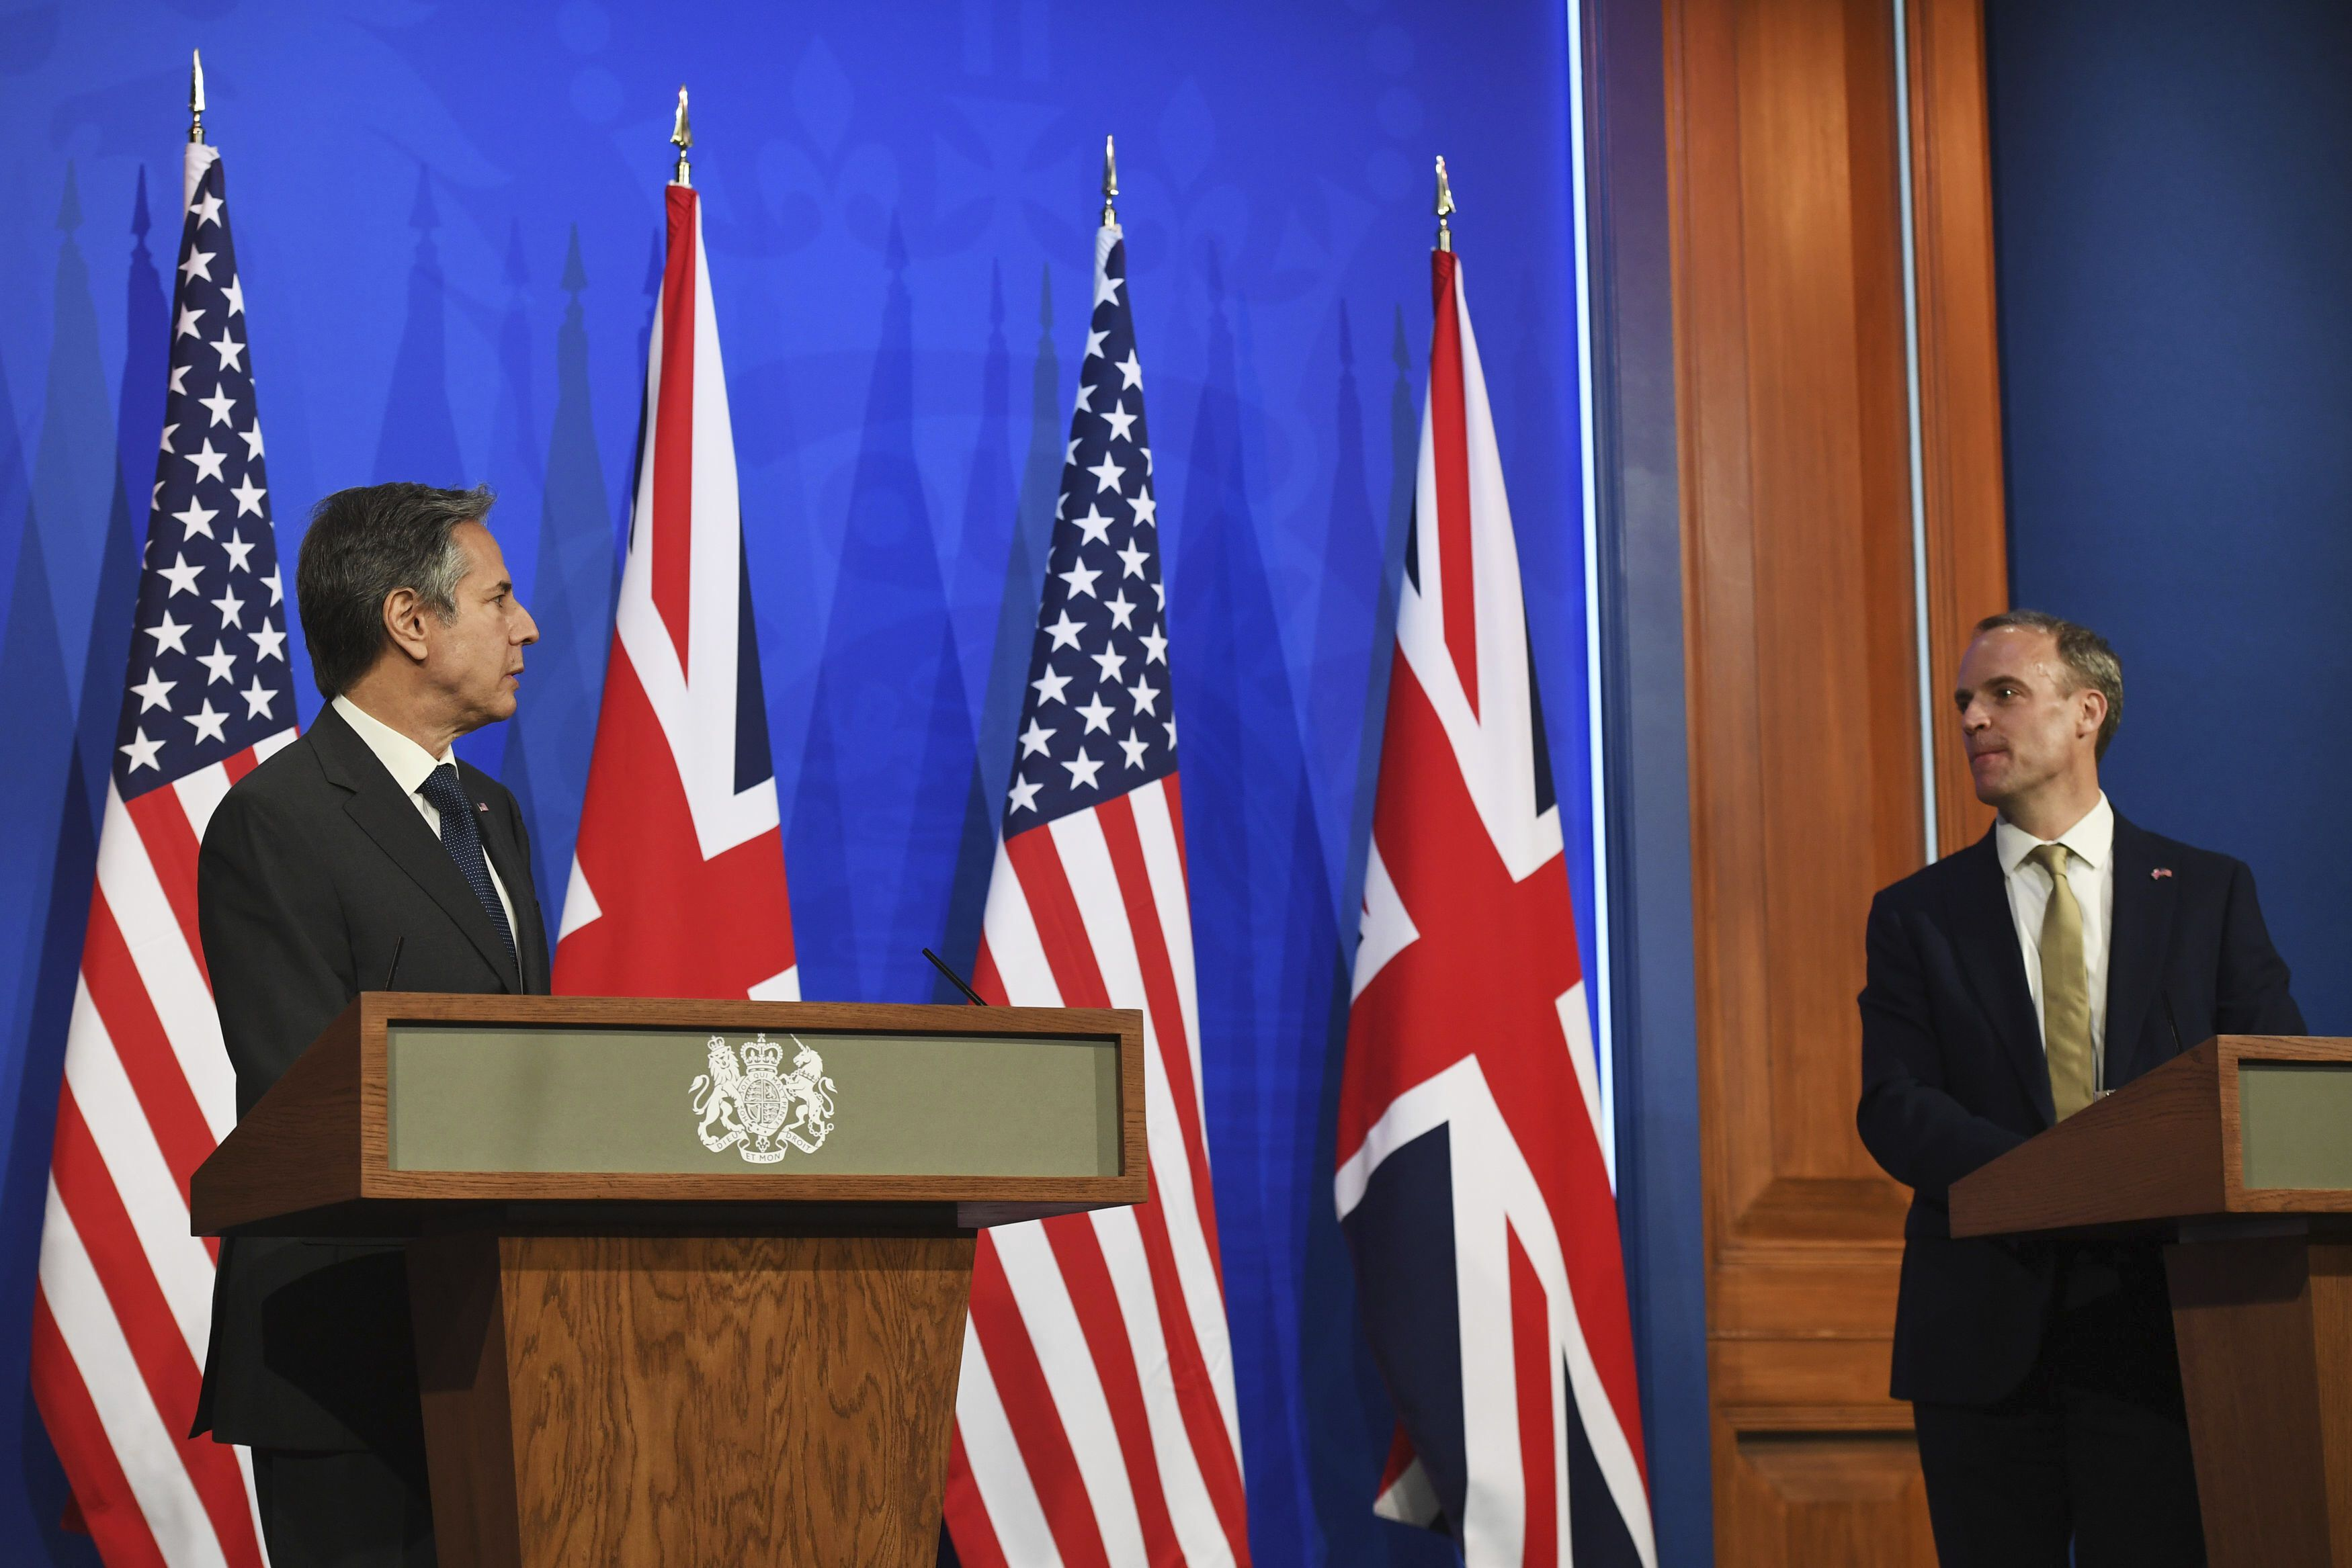 US says fate of nuclear pact up to Iran as talks resume